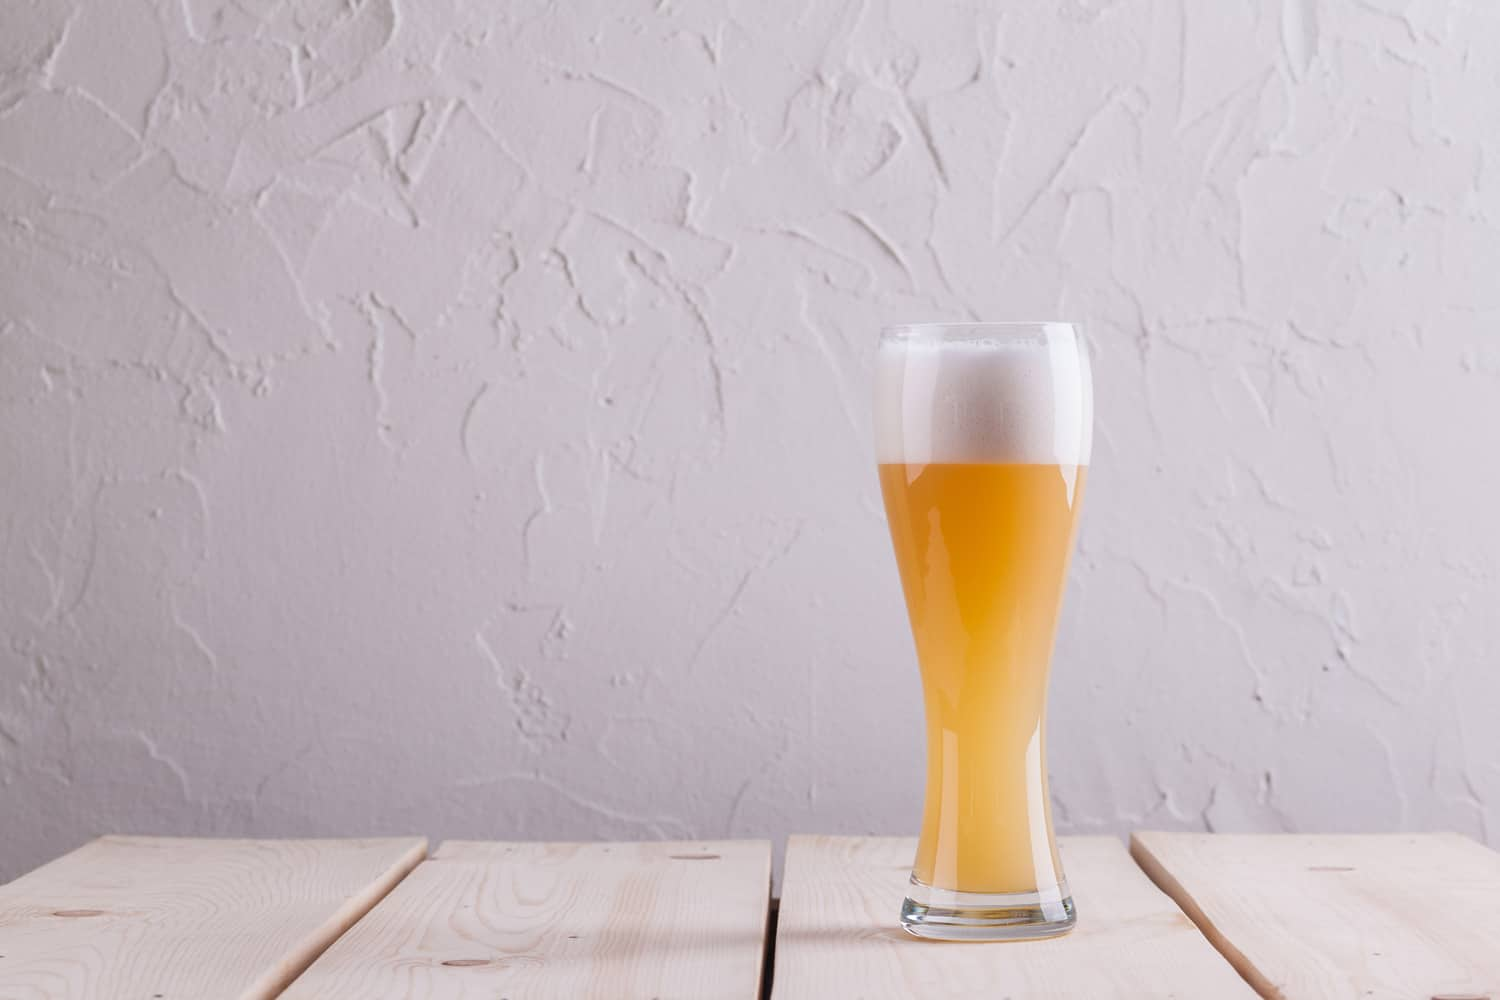 Full glass of hefeweizen wheat beer on a light wood table